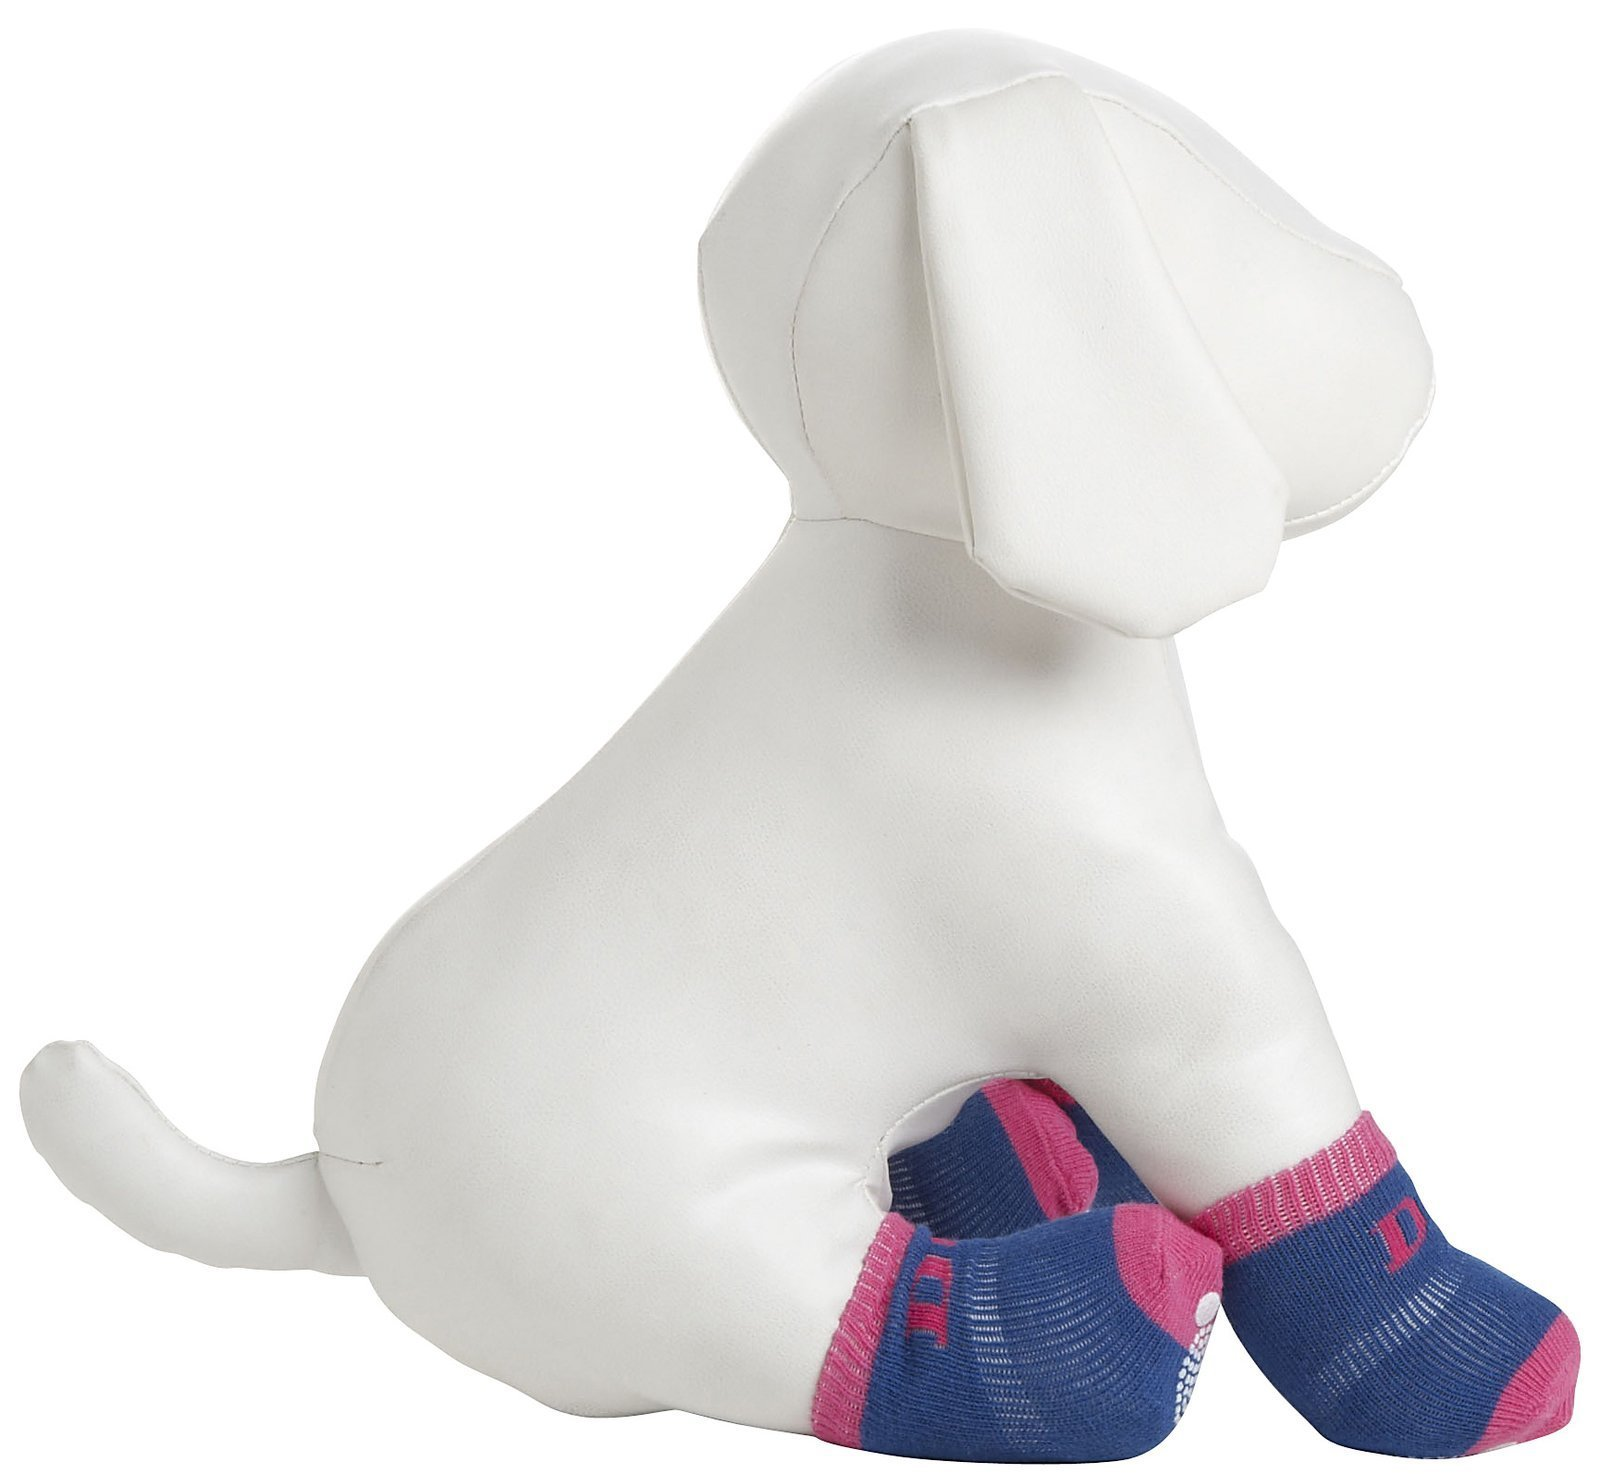 Pet Life DPF09912 4-Pack Anti-Skid Soft Cotton Dog Socks with Rubber Sole Grip, X-Small/Small, Pink/Blue